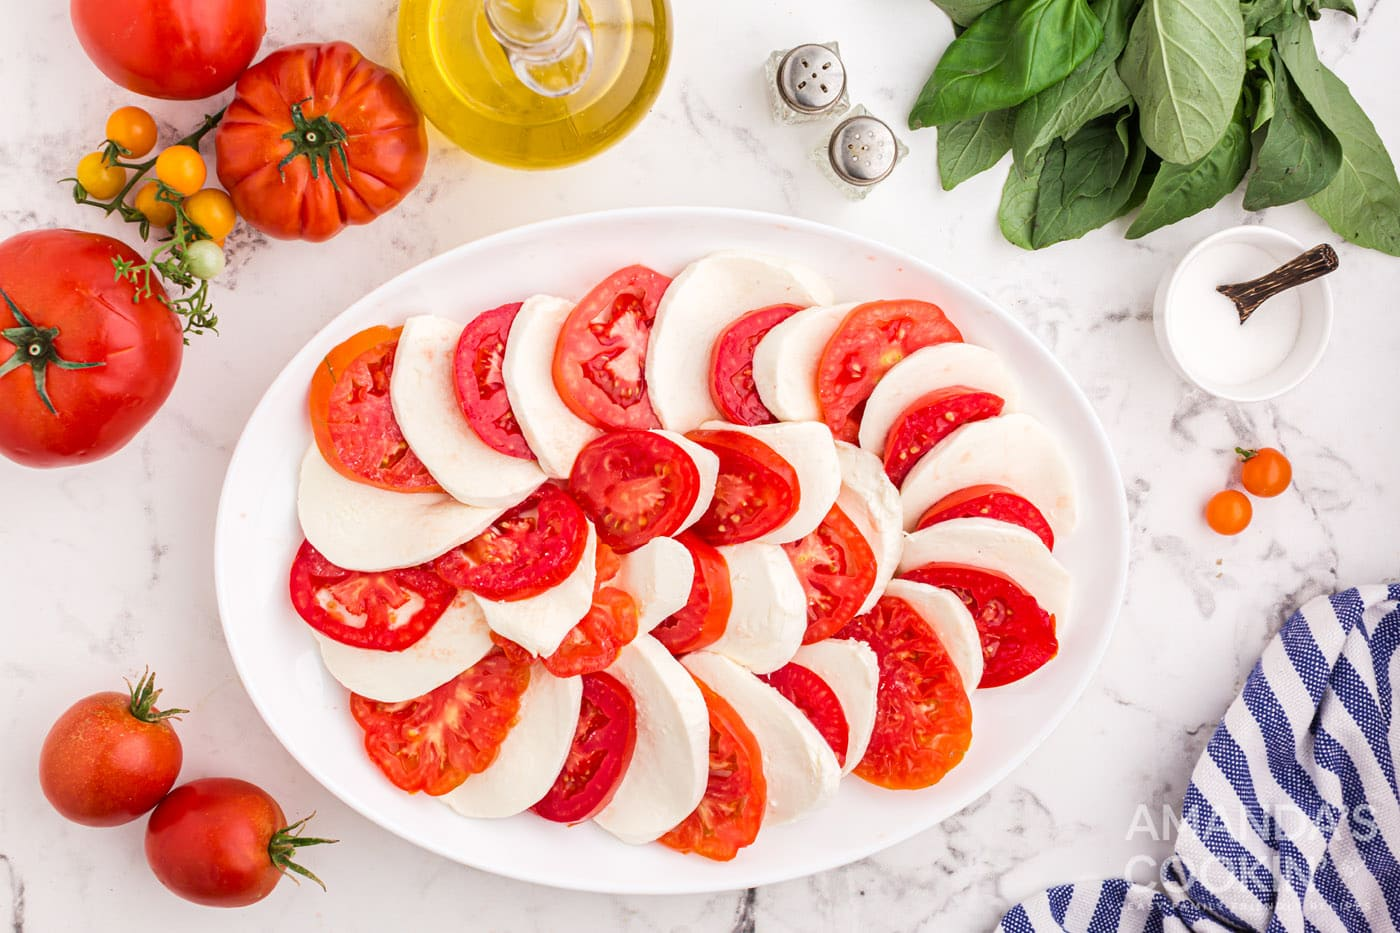 sliced tomatoes and mozzarella arranged on a plate